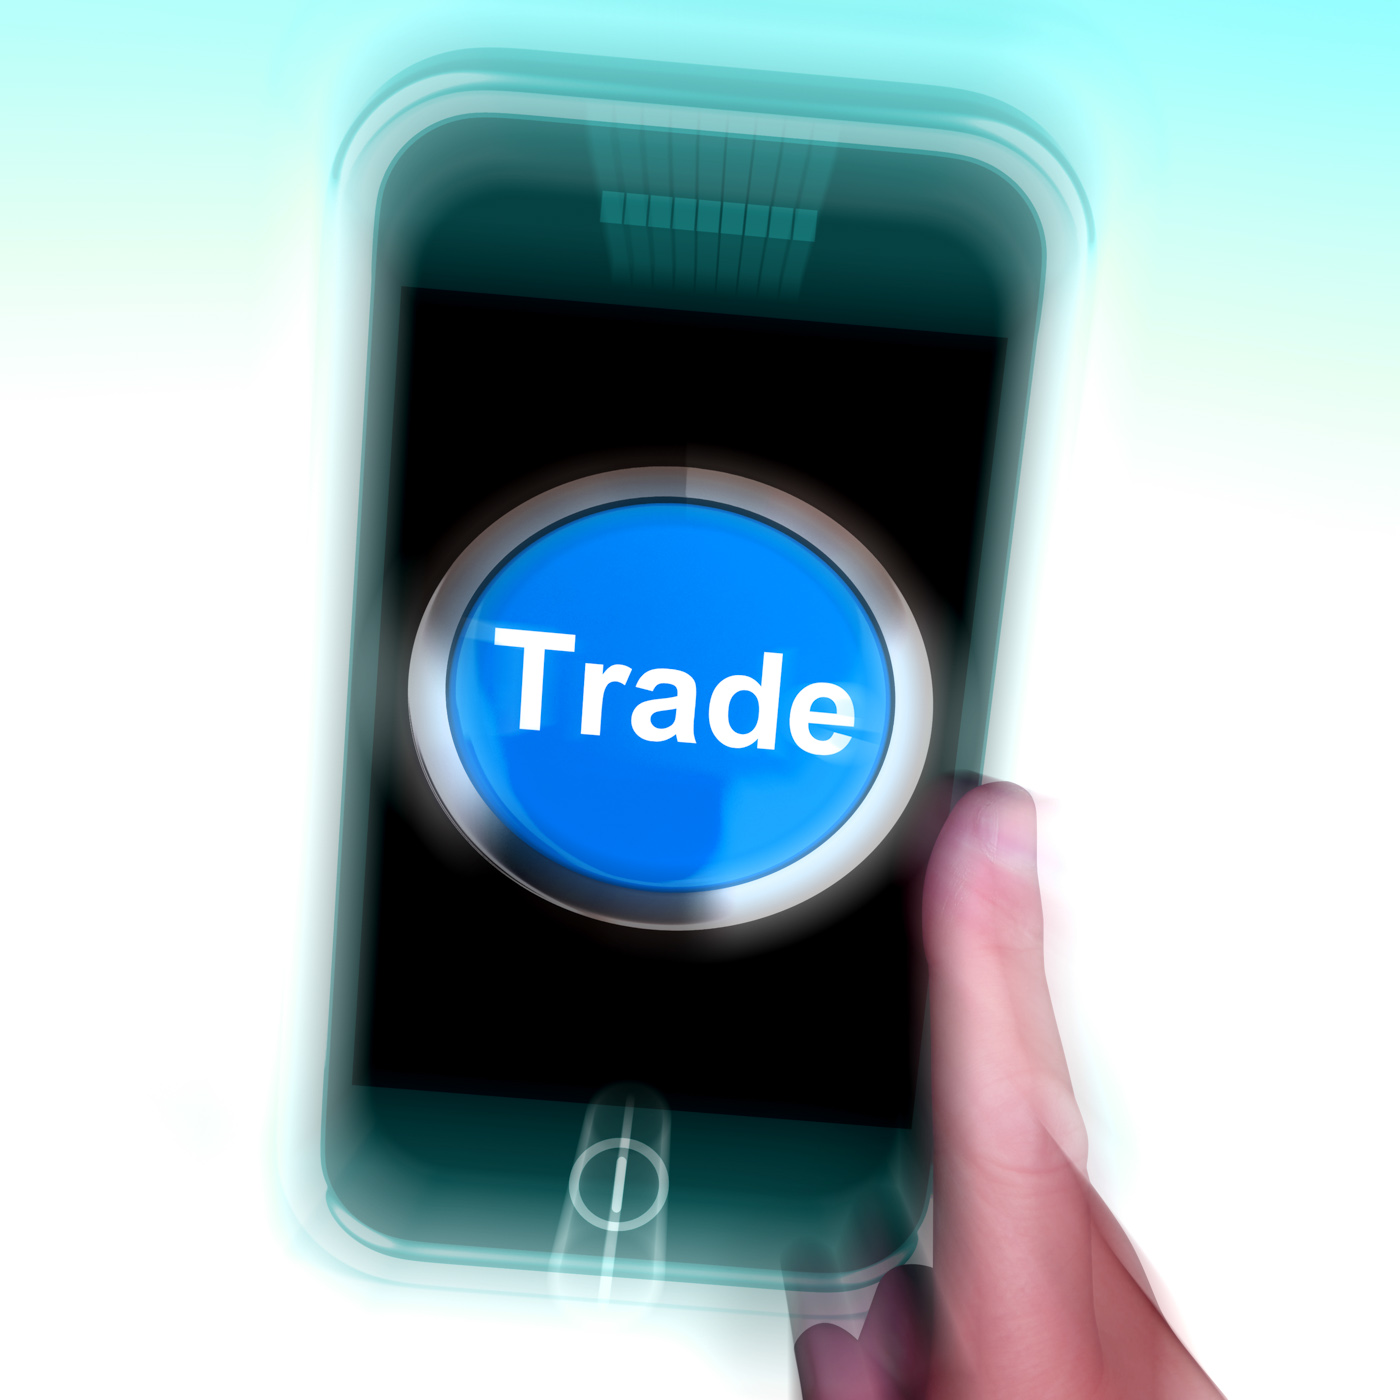 Trade on mobile phone shows online buying and selling photo